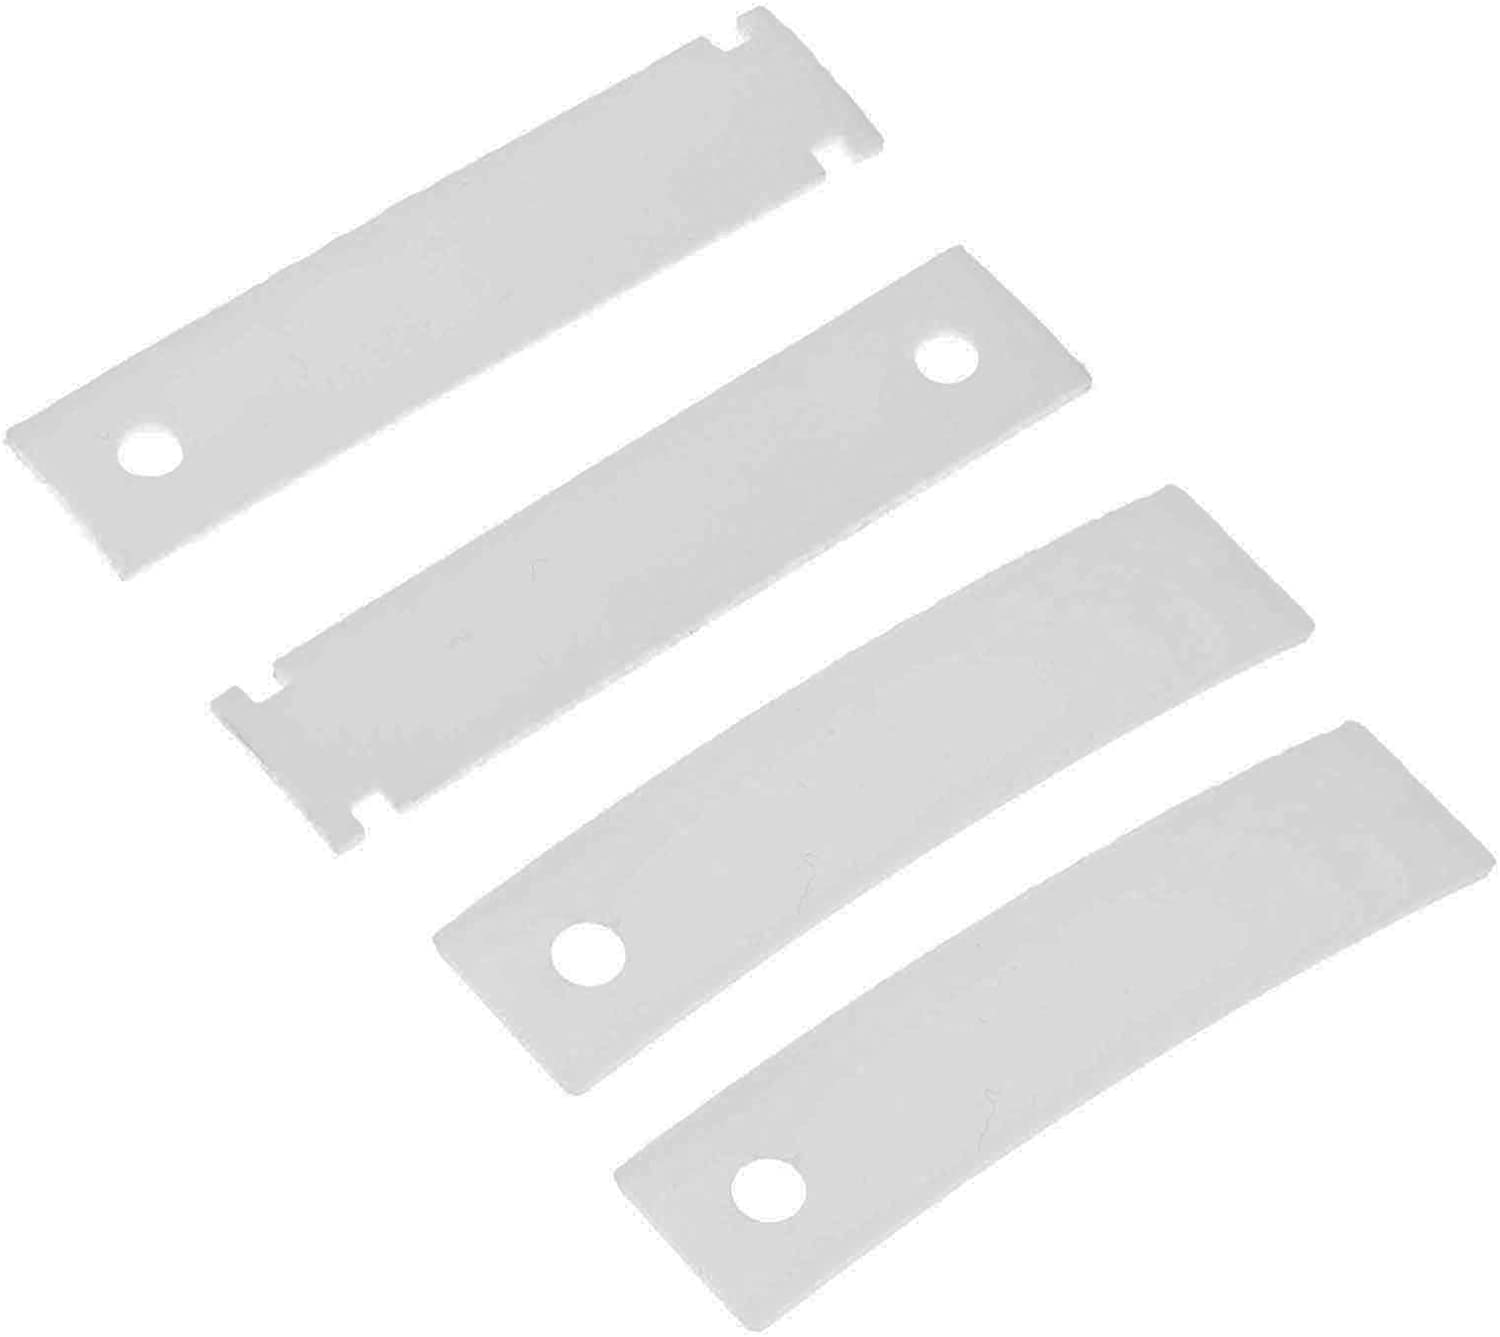 WE1M333 WE1M1067 Dryer Drum Bearing Slide, Replace # WE1M333 AP3206716 WE1M481 WE1M316 AP5668531 WE1M507, Replacement for GE, Kenmore, Hotpoint, Sears, RCA (Pack of 4)